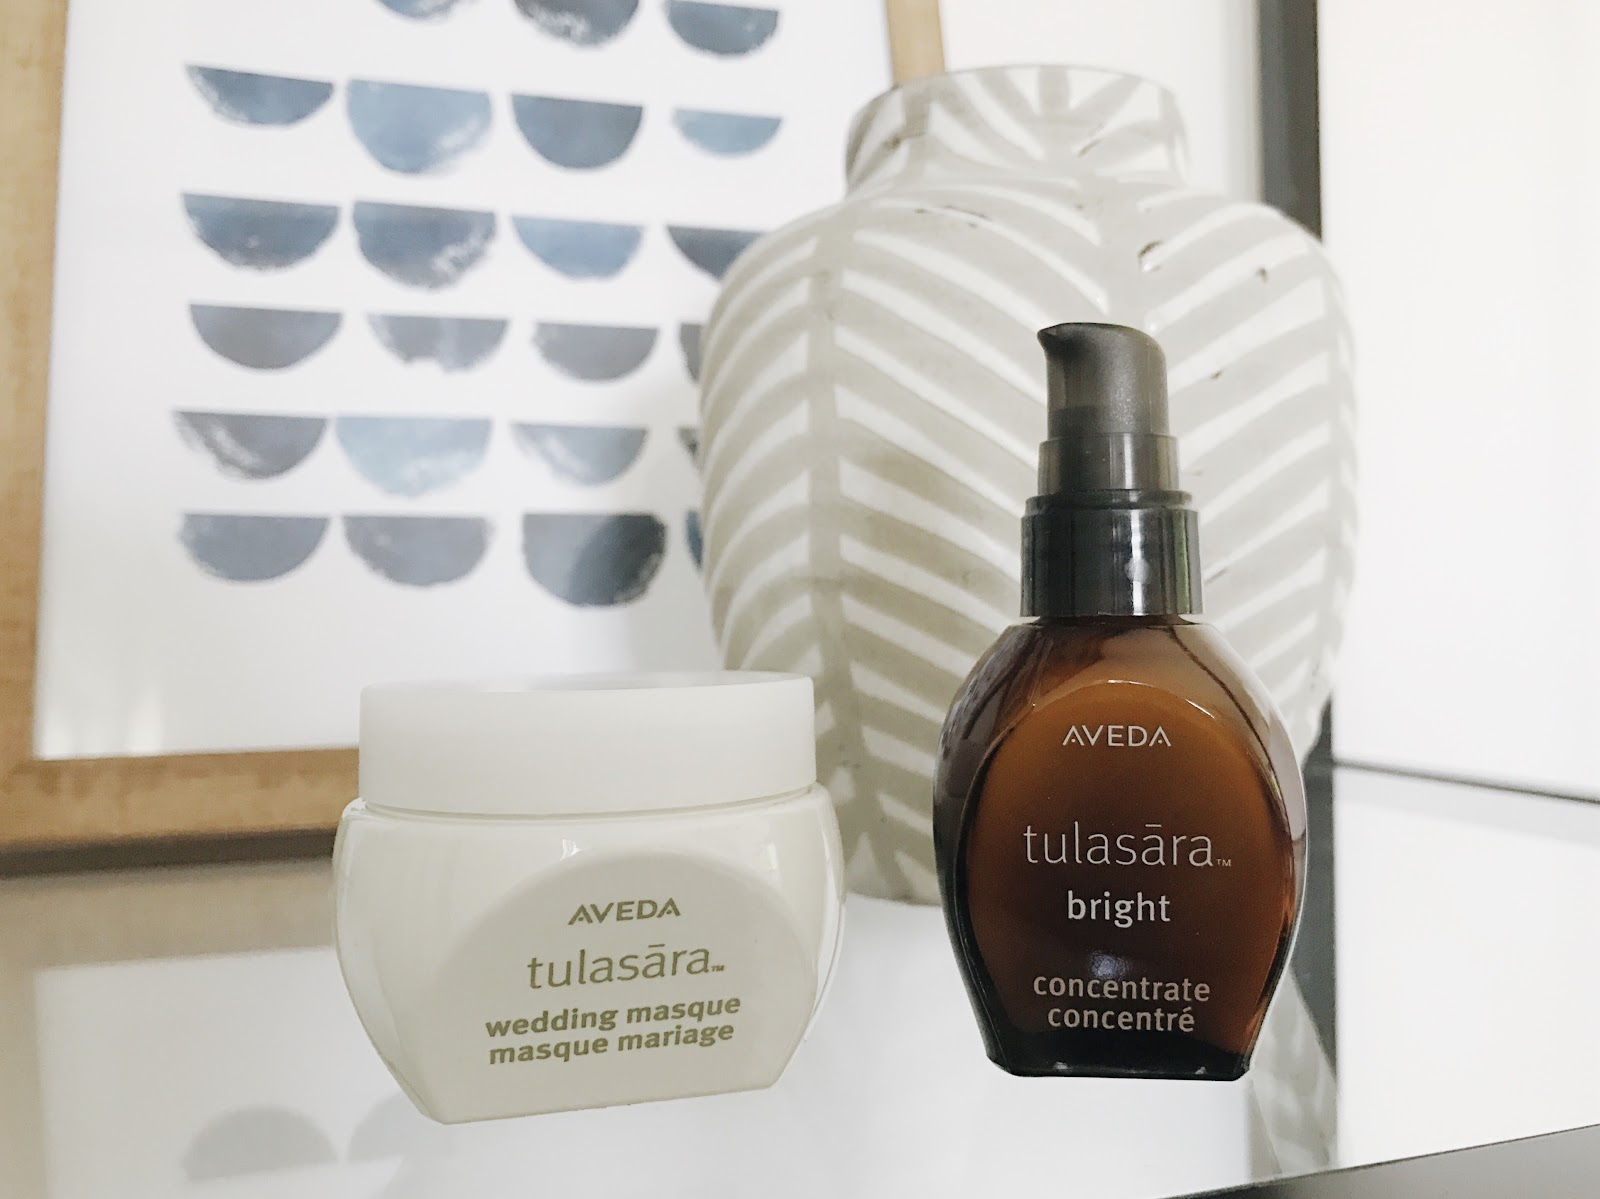 Aveda natural skincare products